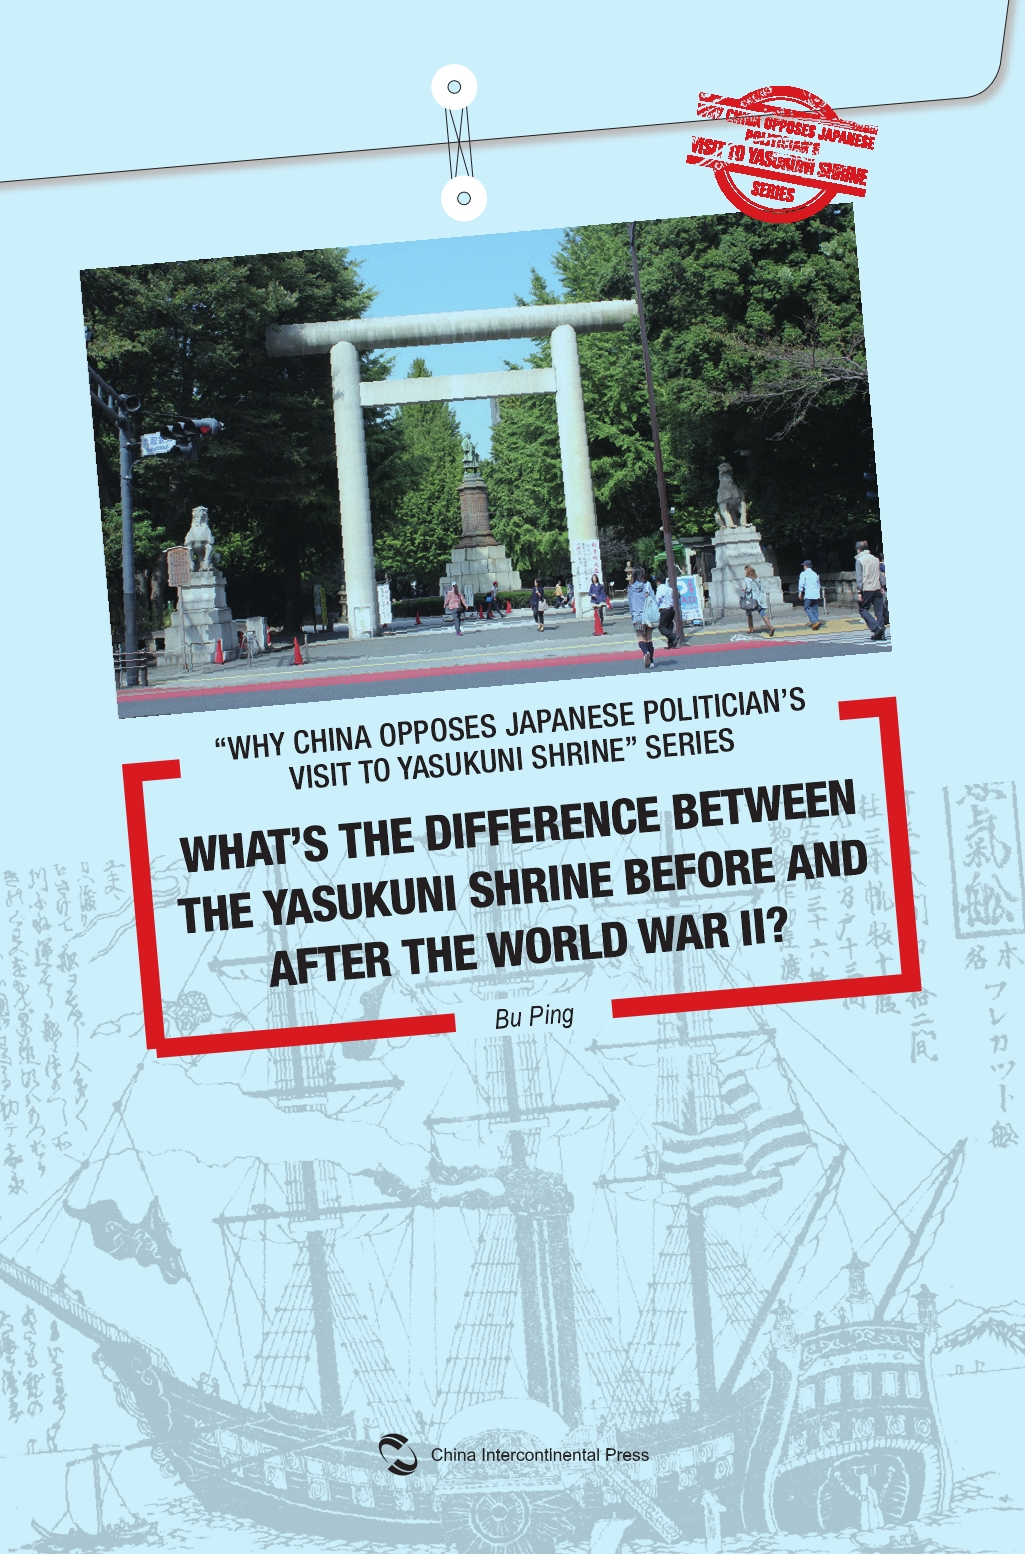 What's the Difference Between the Yasukuni Shrine Before and After the World War Ii?